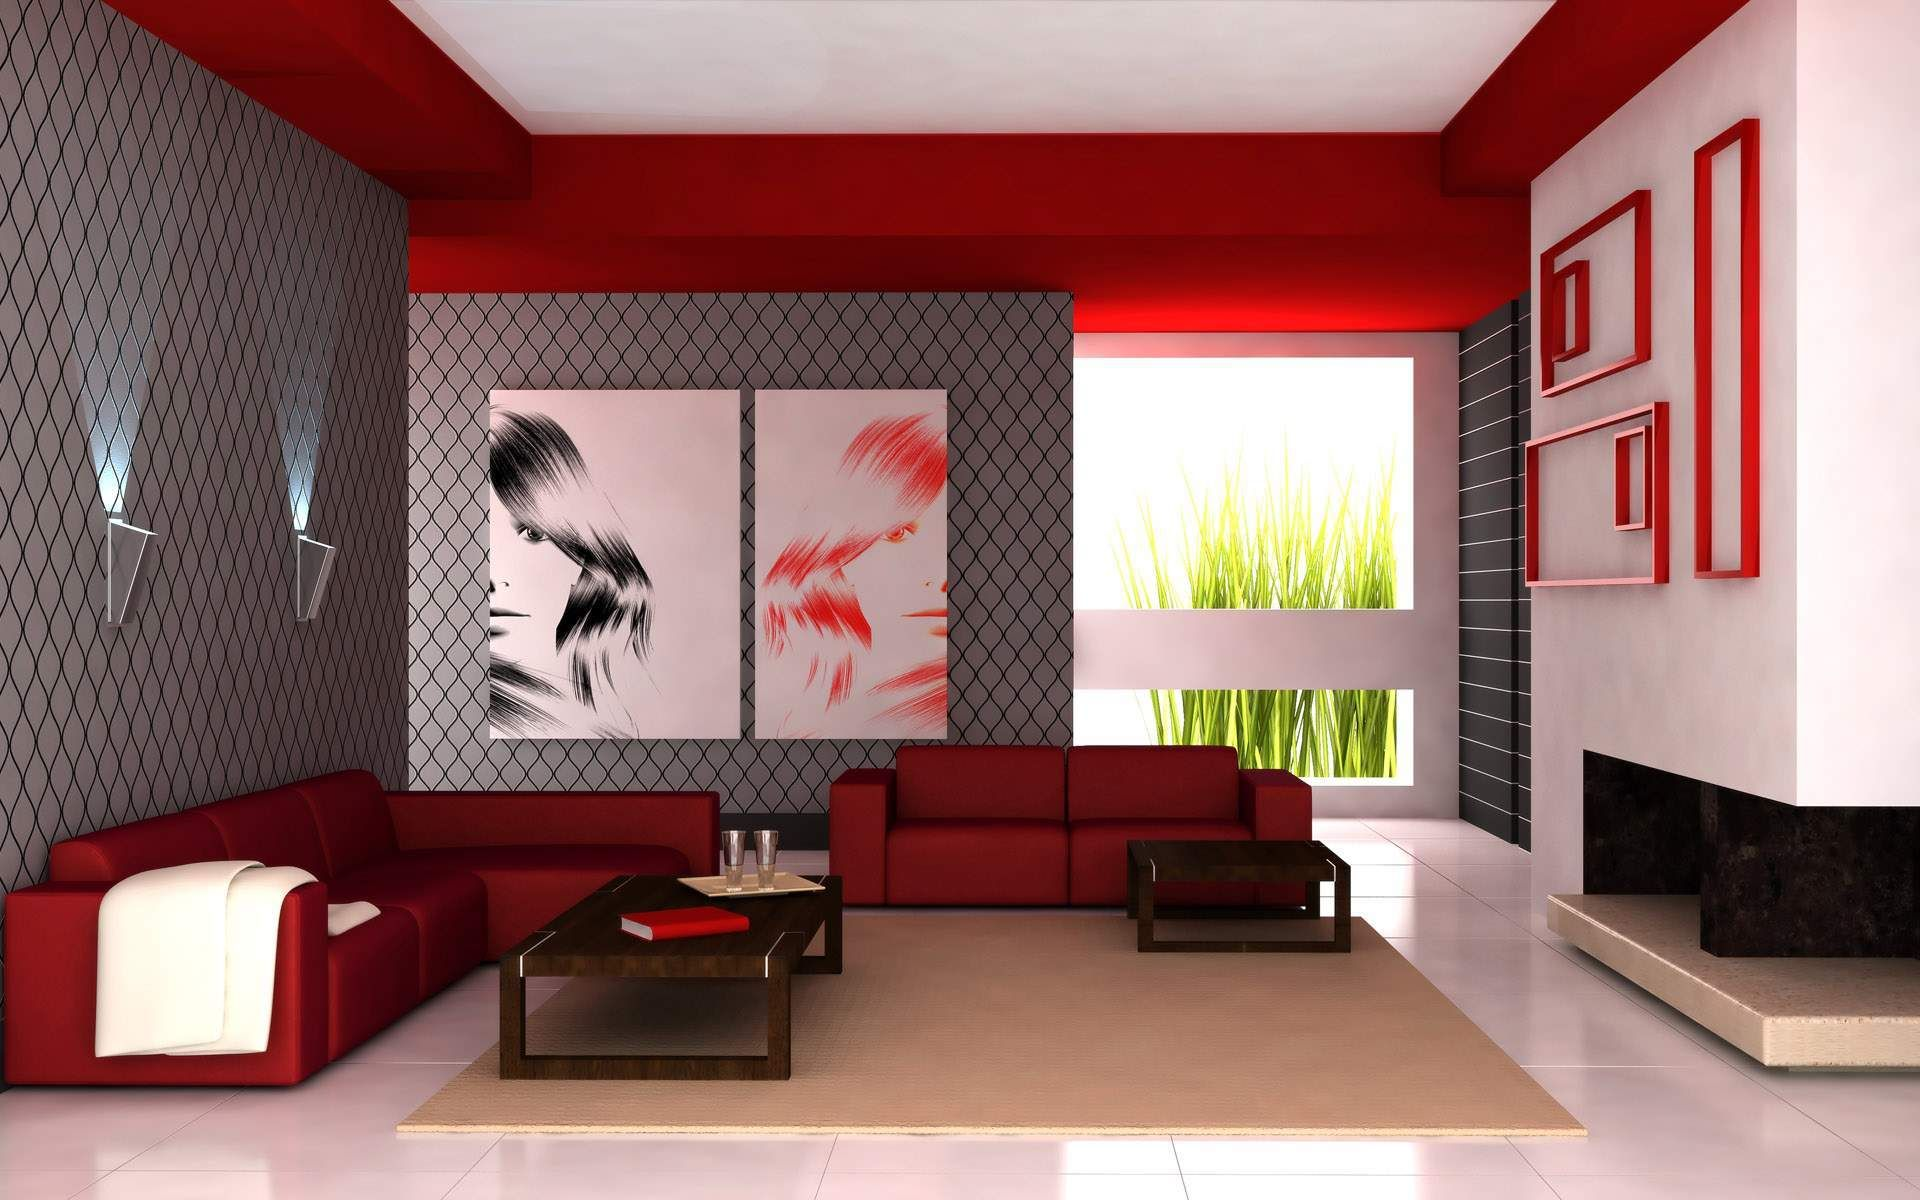 the romantic bedroom that combine white red plaid black white and black to make the room looks great jpg black and red bedroomjpg 19201200 the romantic bedroom that combine white red plaid black white and